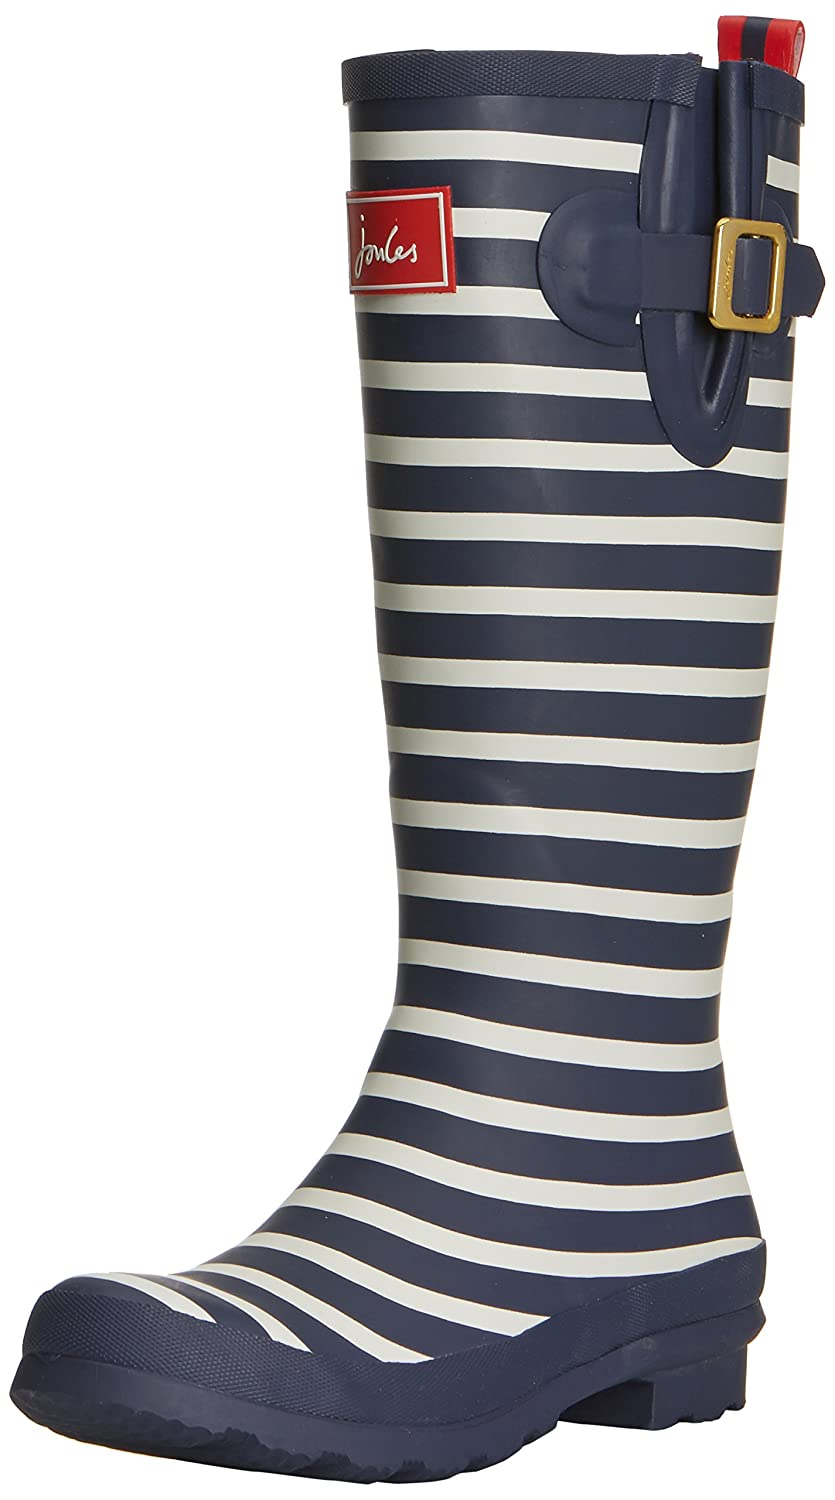 Joules Women's B00KCME778 Welly Print Rain Boot B00KCME778 Women's 8 M US|Navy Stripe b11ac1